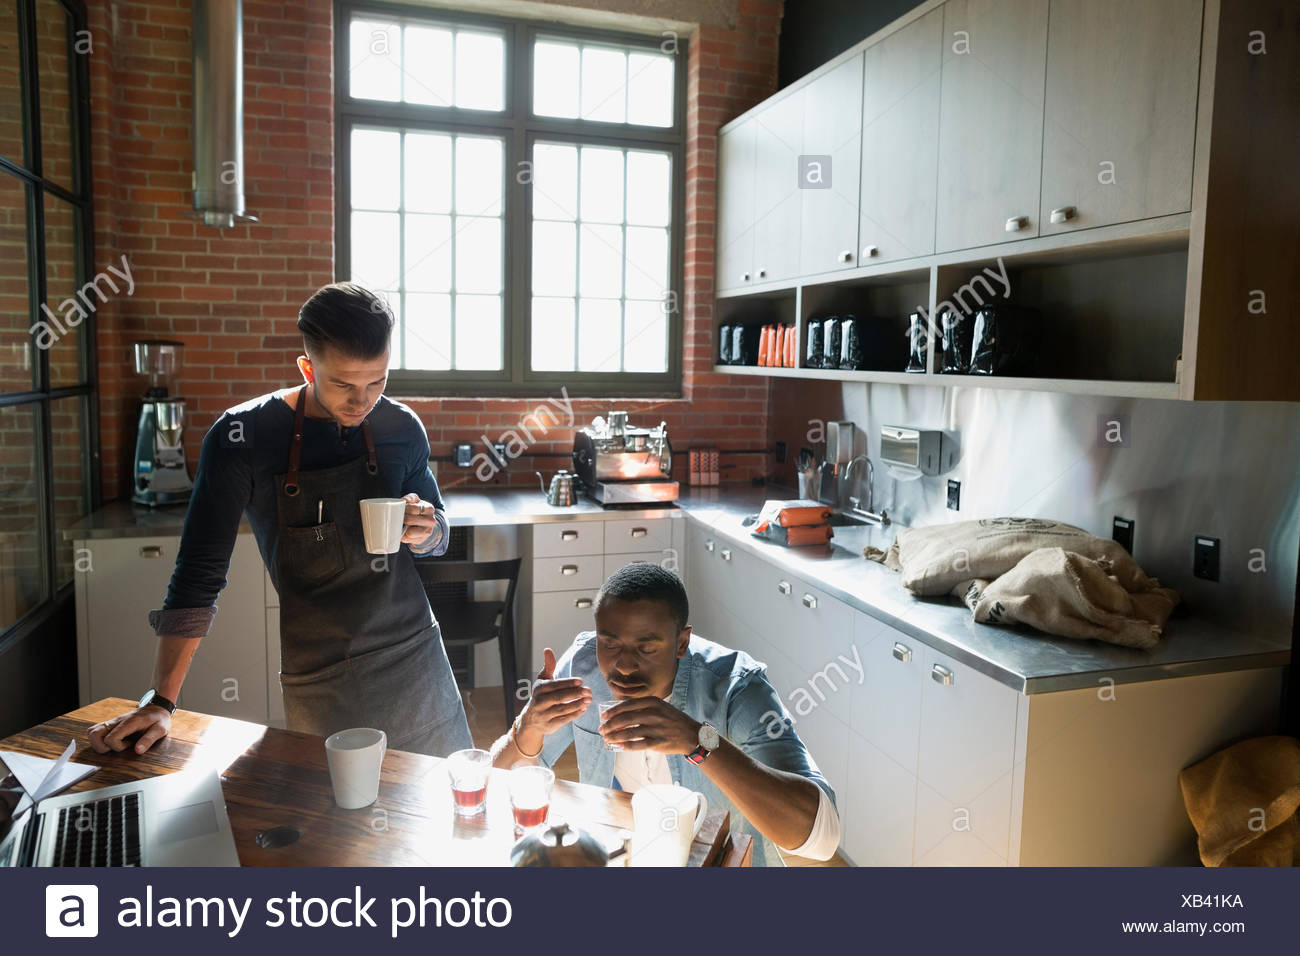 Entrepreneurial coffee roasters testing coffee in kitchen - Stock Image